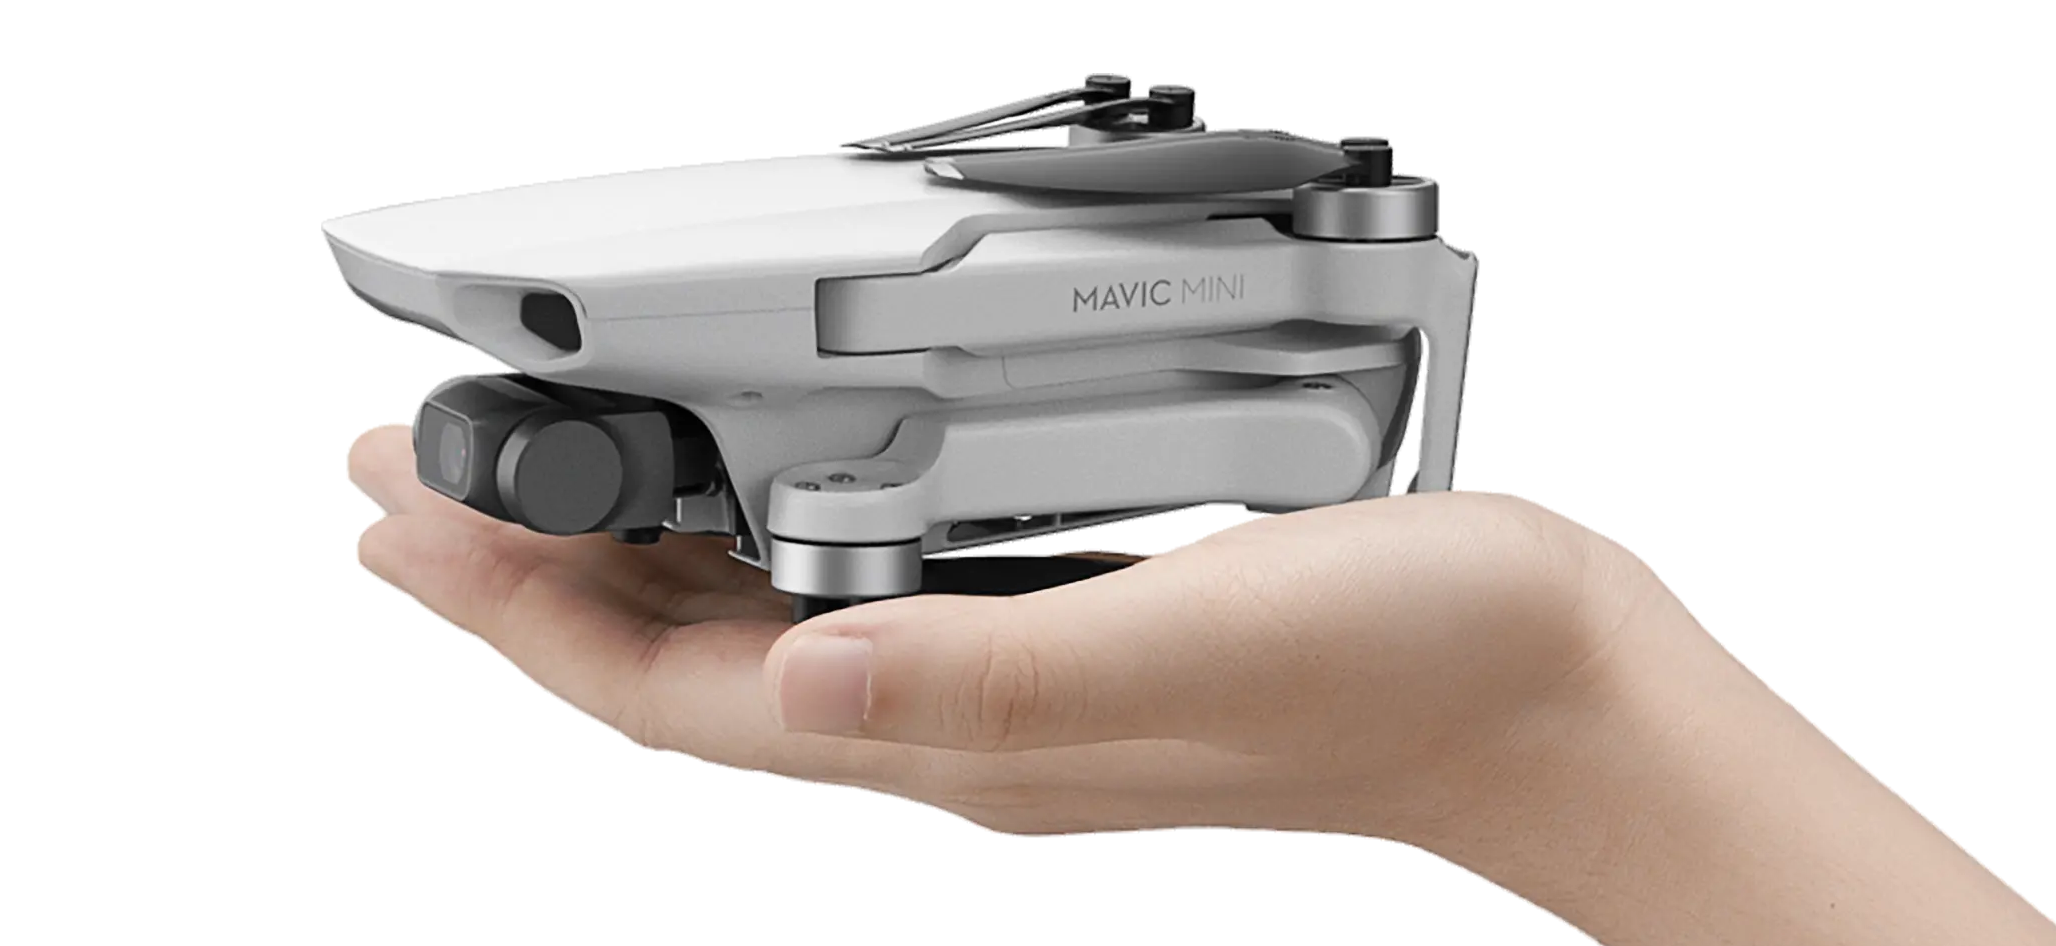 DJI Mavic Mini In Hand